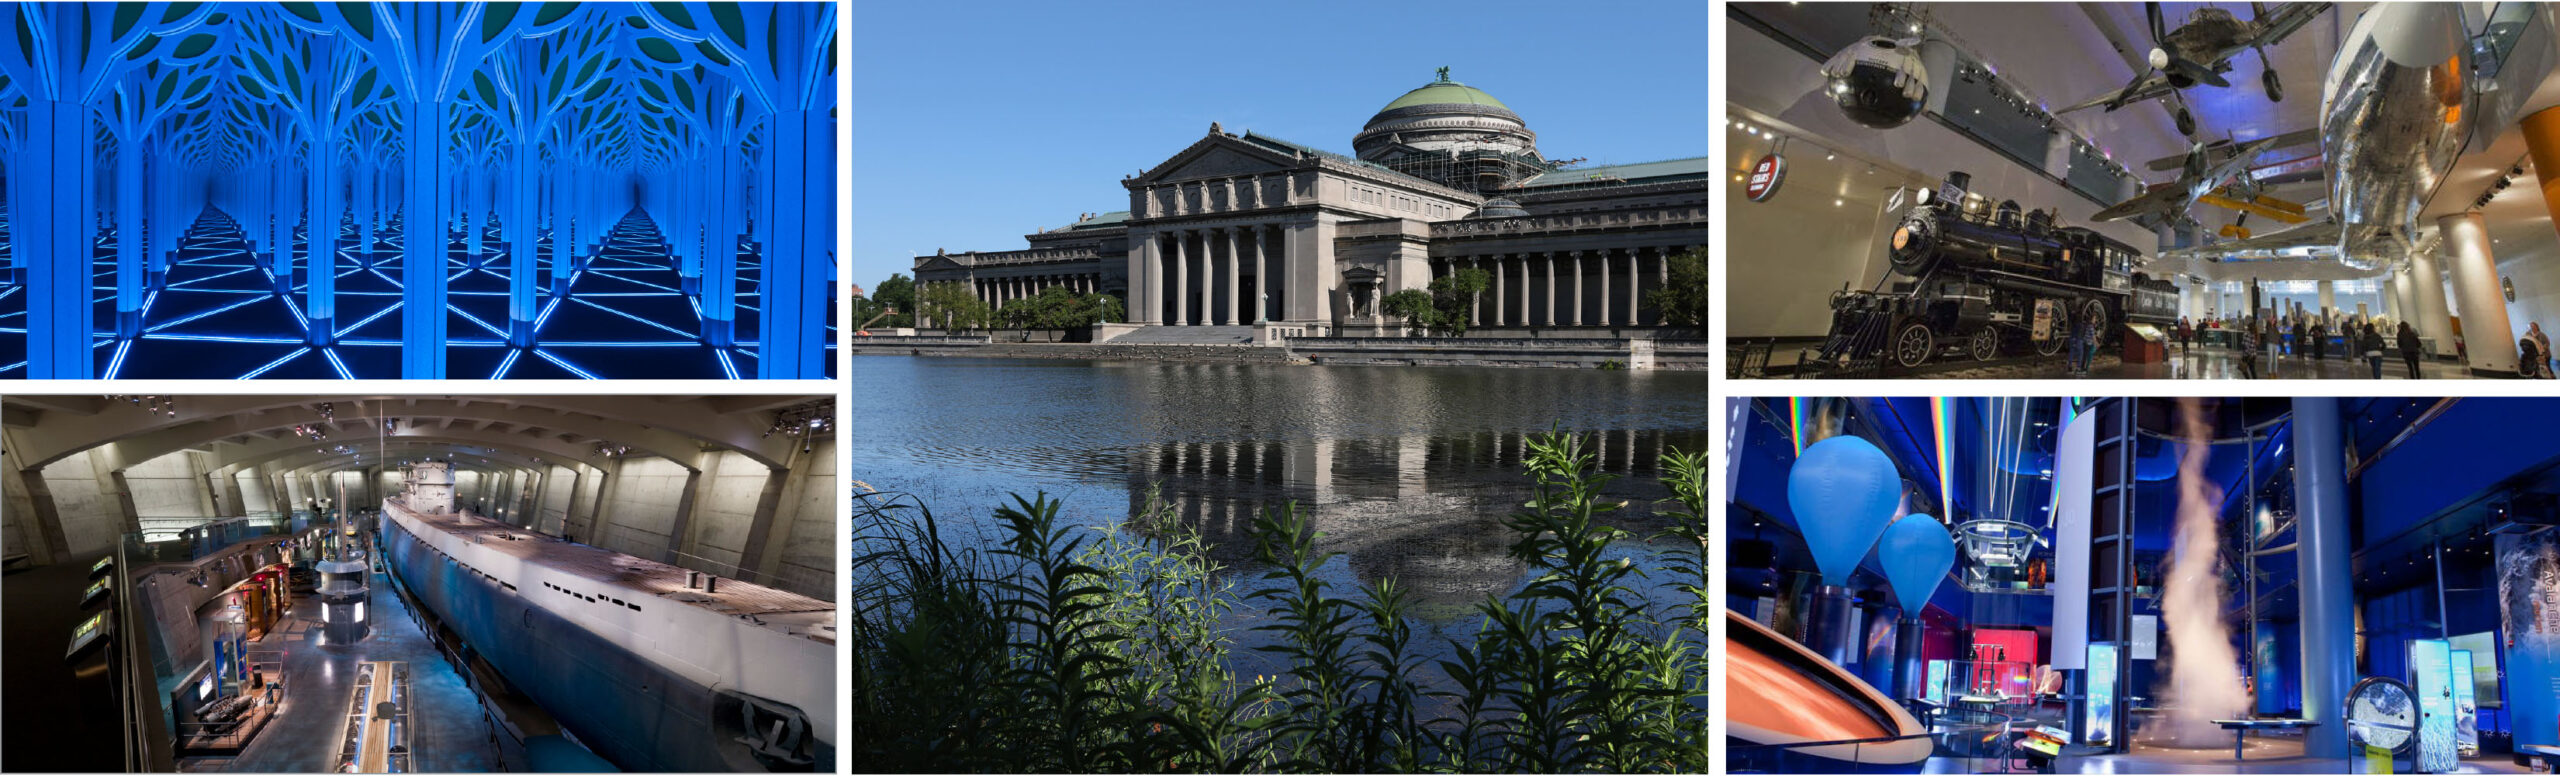 Museum of Science and Industry-Chicago is one of the best!